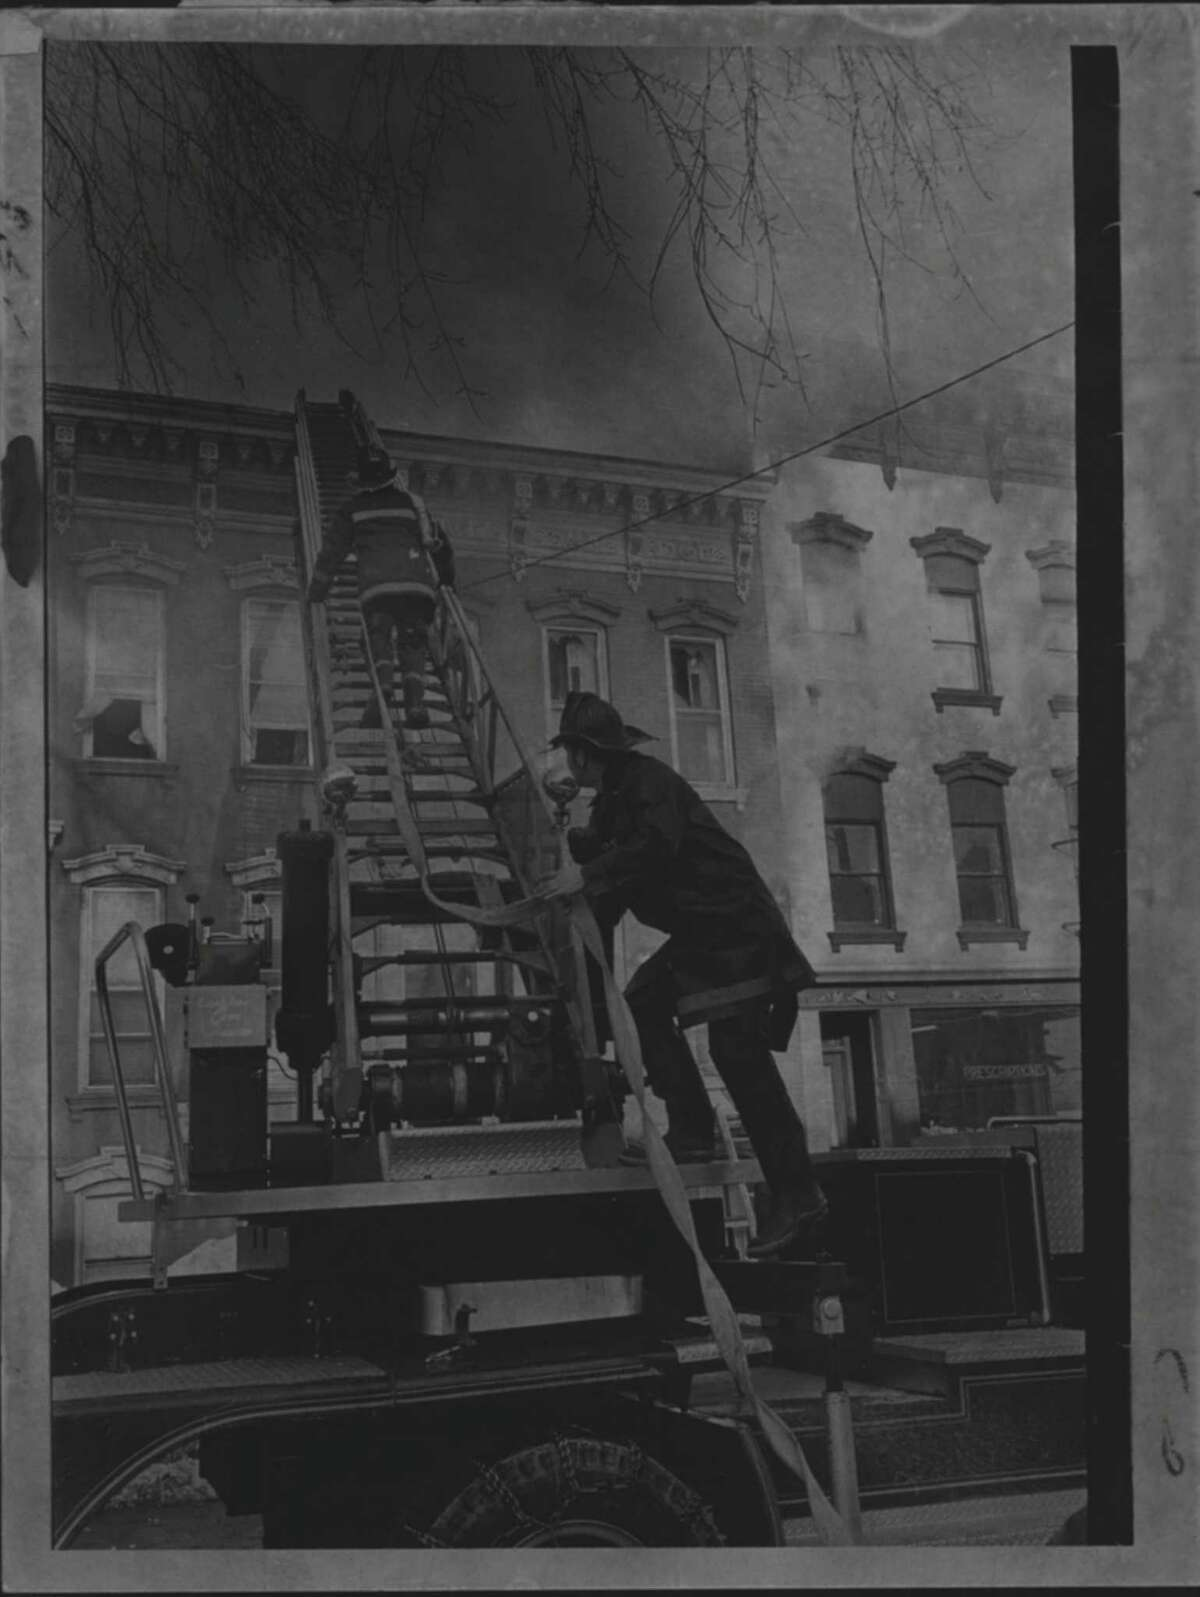 Albany, New York - fire - Clinton Avenue. 1970 (Times Union Archive)